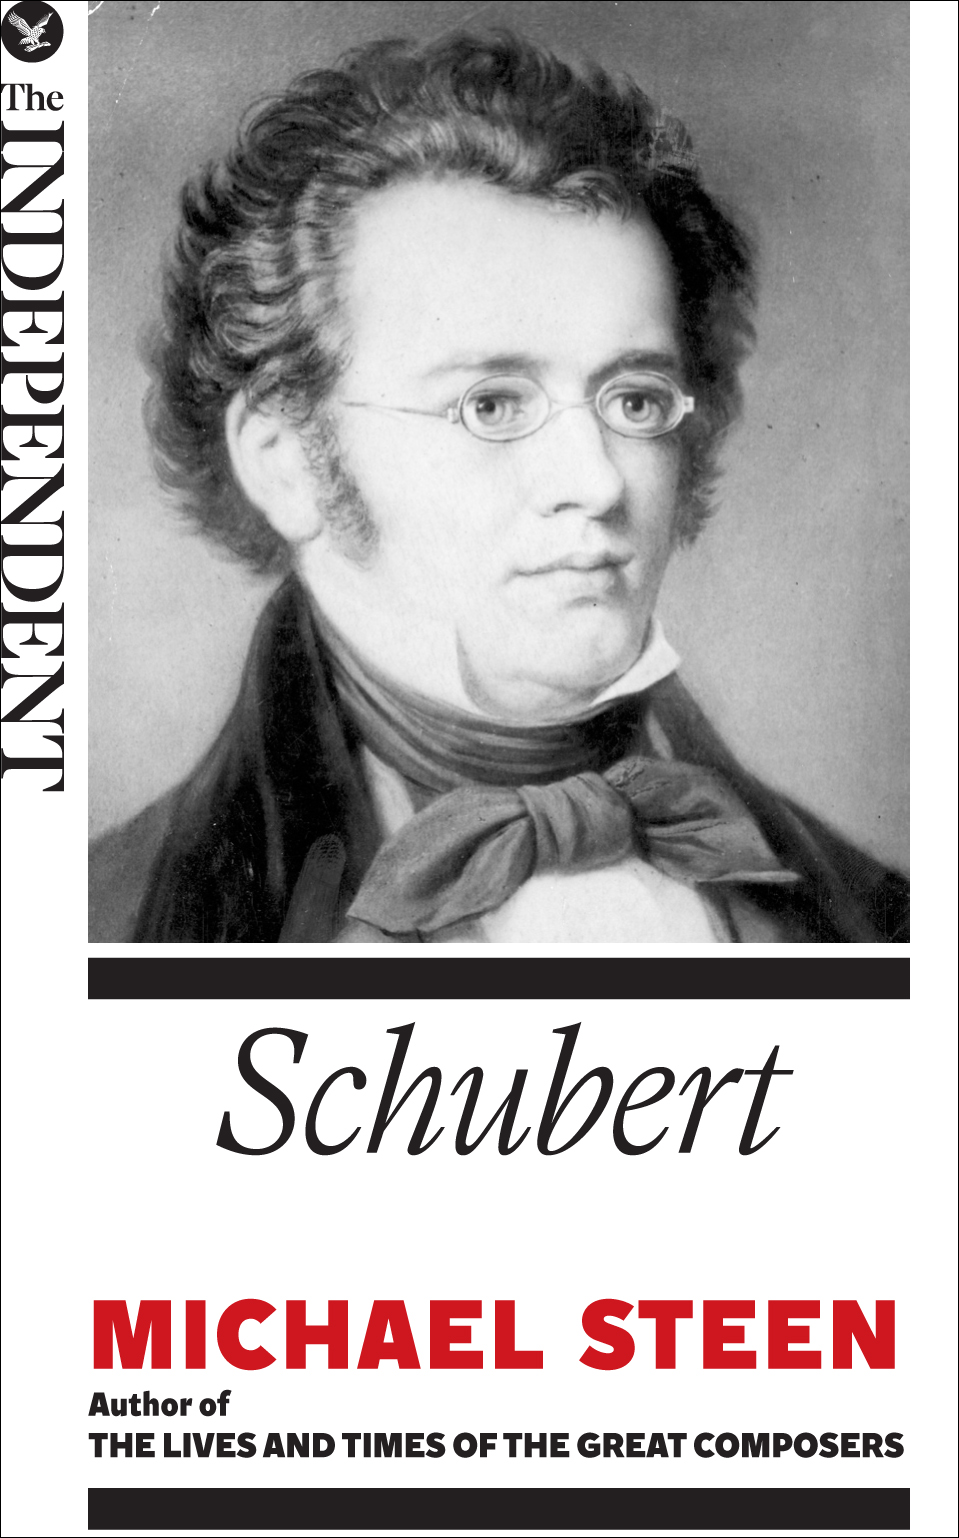 Schubert: The Great Composers